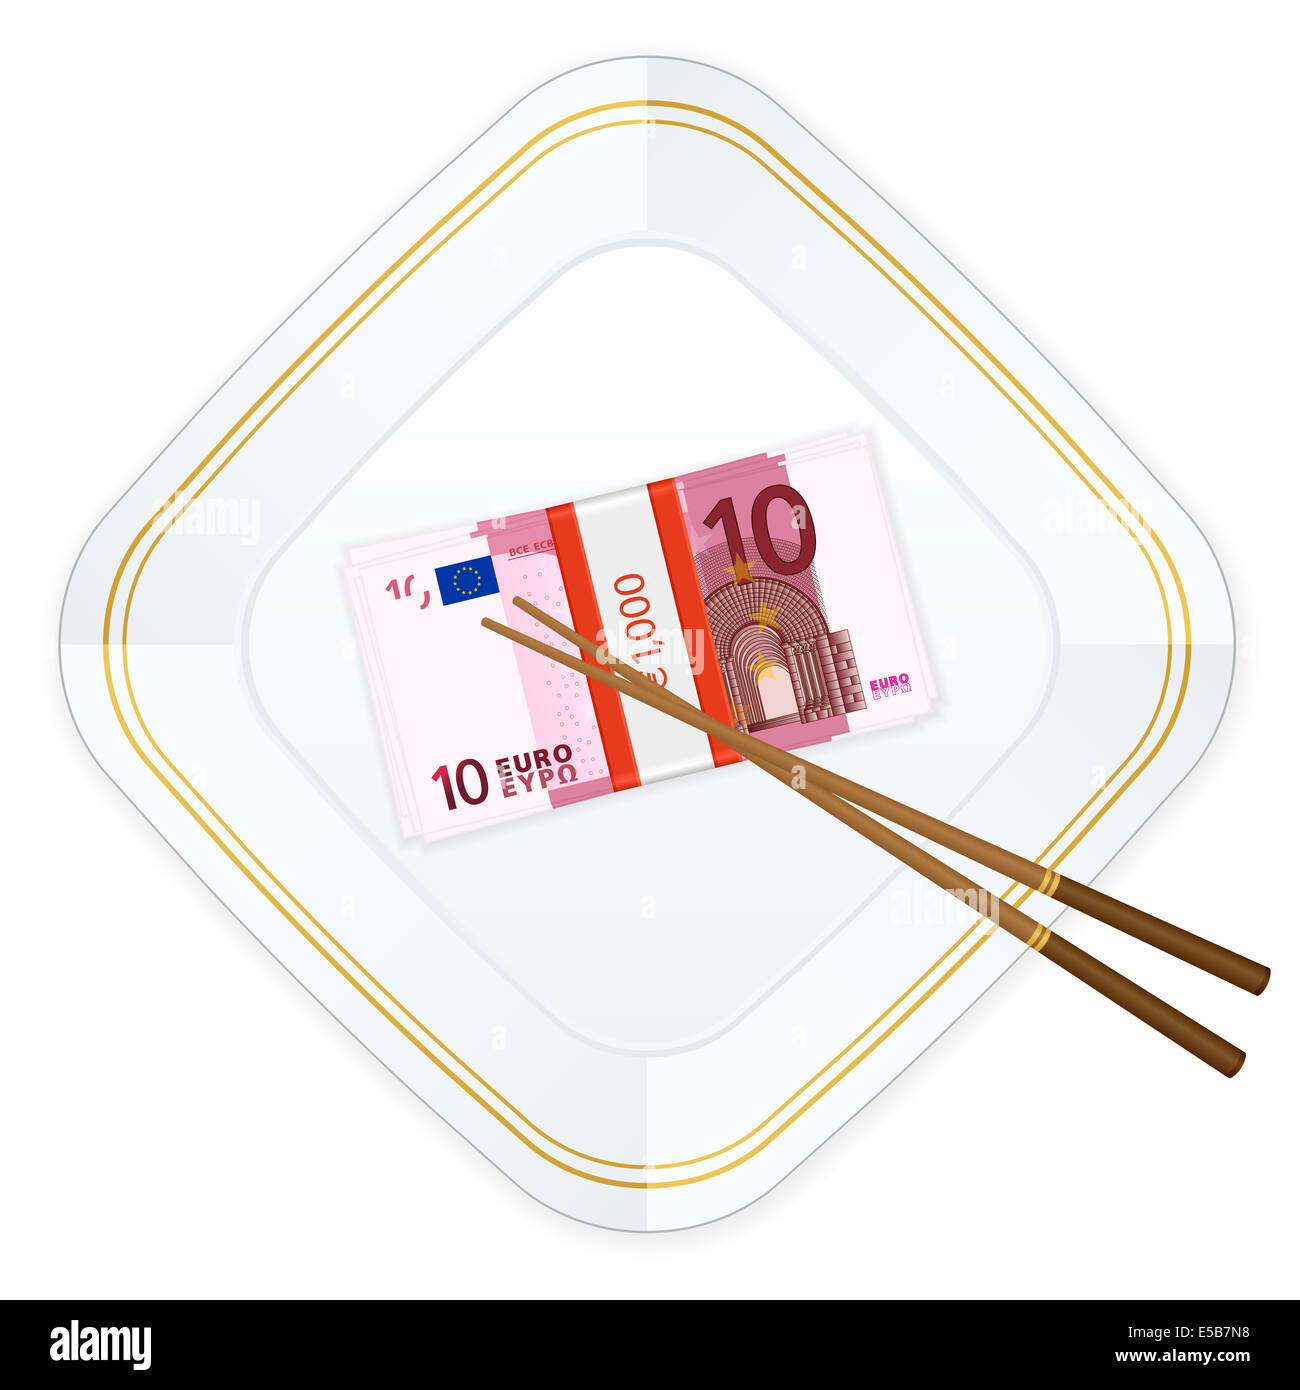 Plate, chopsticks and euro banknotes pack on a white background. Stock Photo